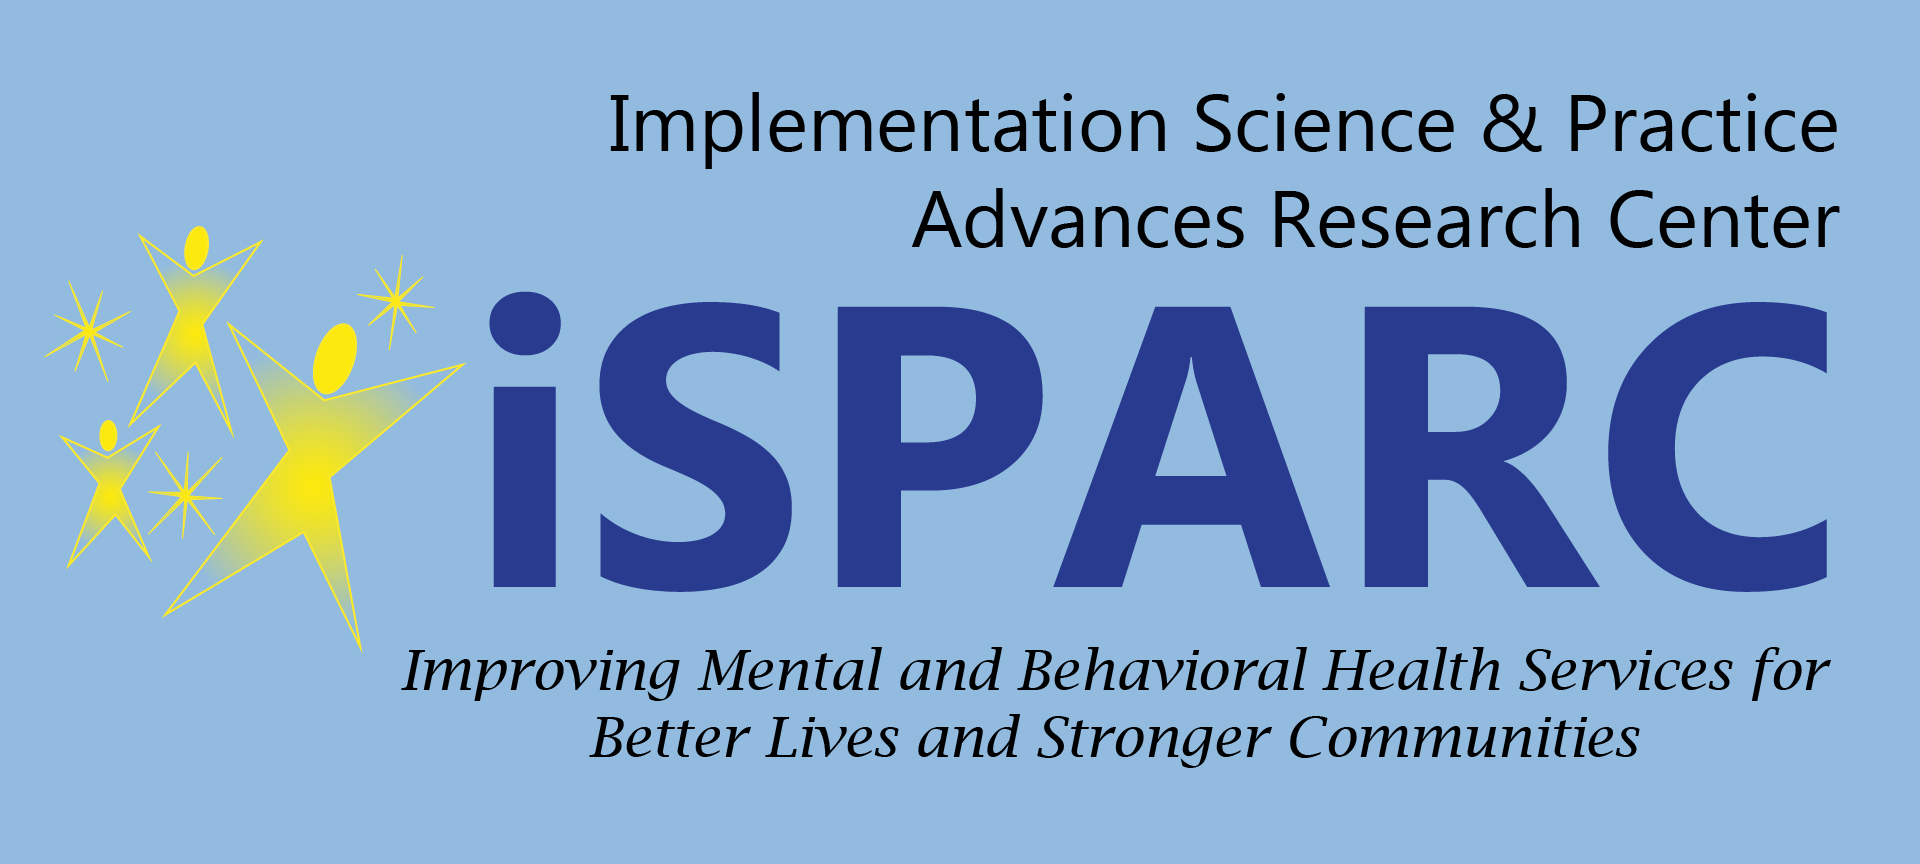 Implementation Science and Practice Advances Research Center Publications